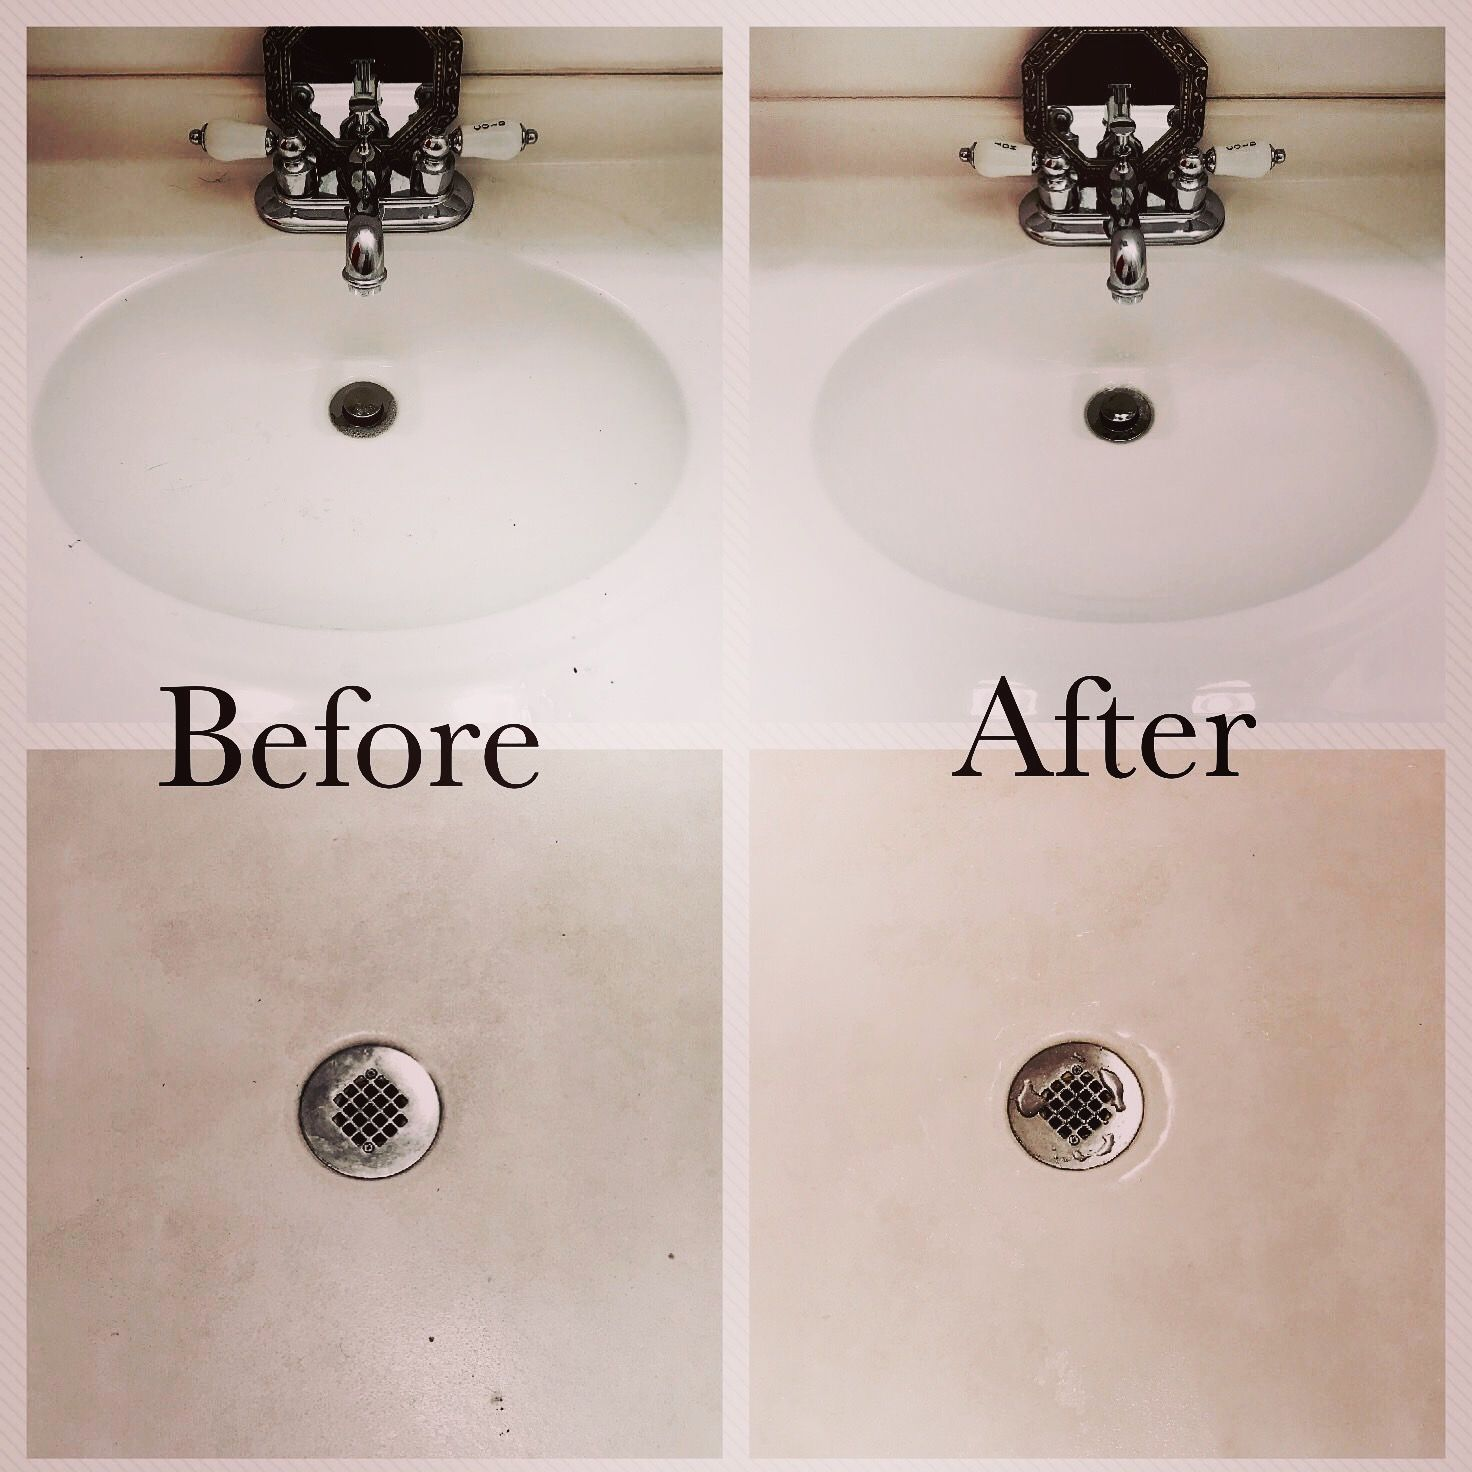 Freesample I Used Kaboom No Drip Mildew Mold Stain Remover With Bleach On Multiple Surfaces Mold In Bathroom Mold On Bathroom Ceiling Cleaning Bathroom Mold